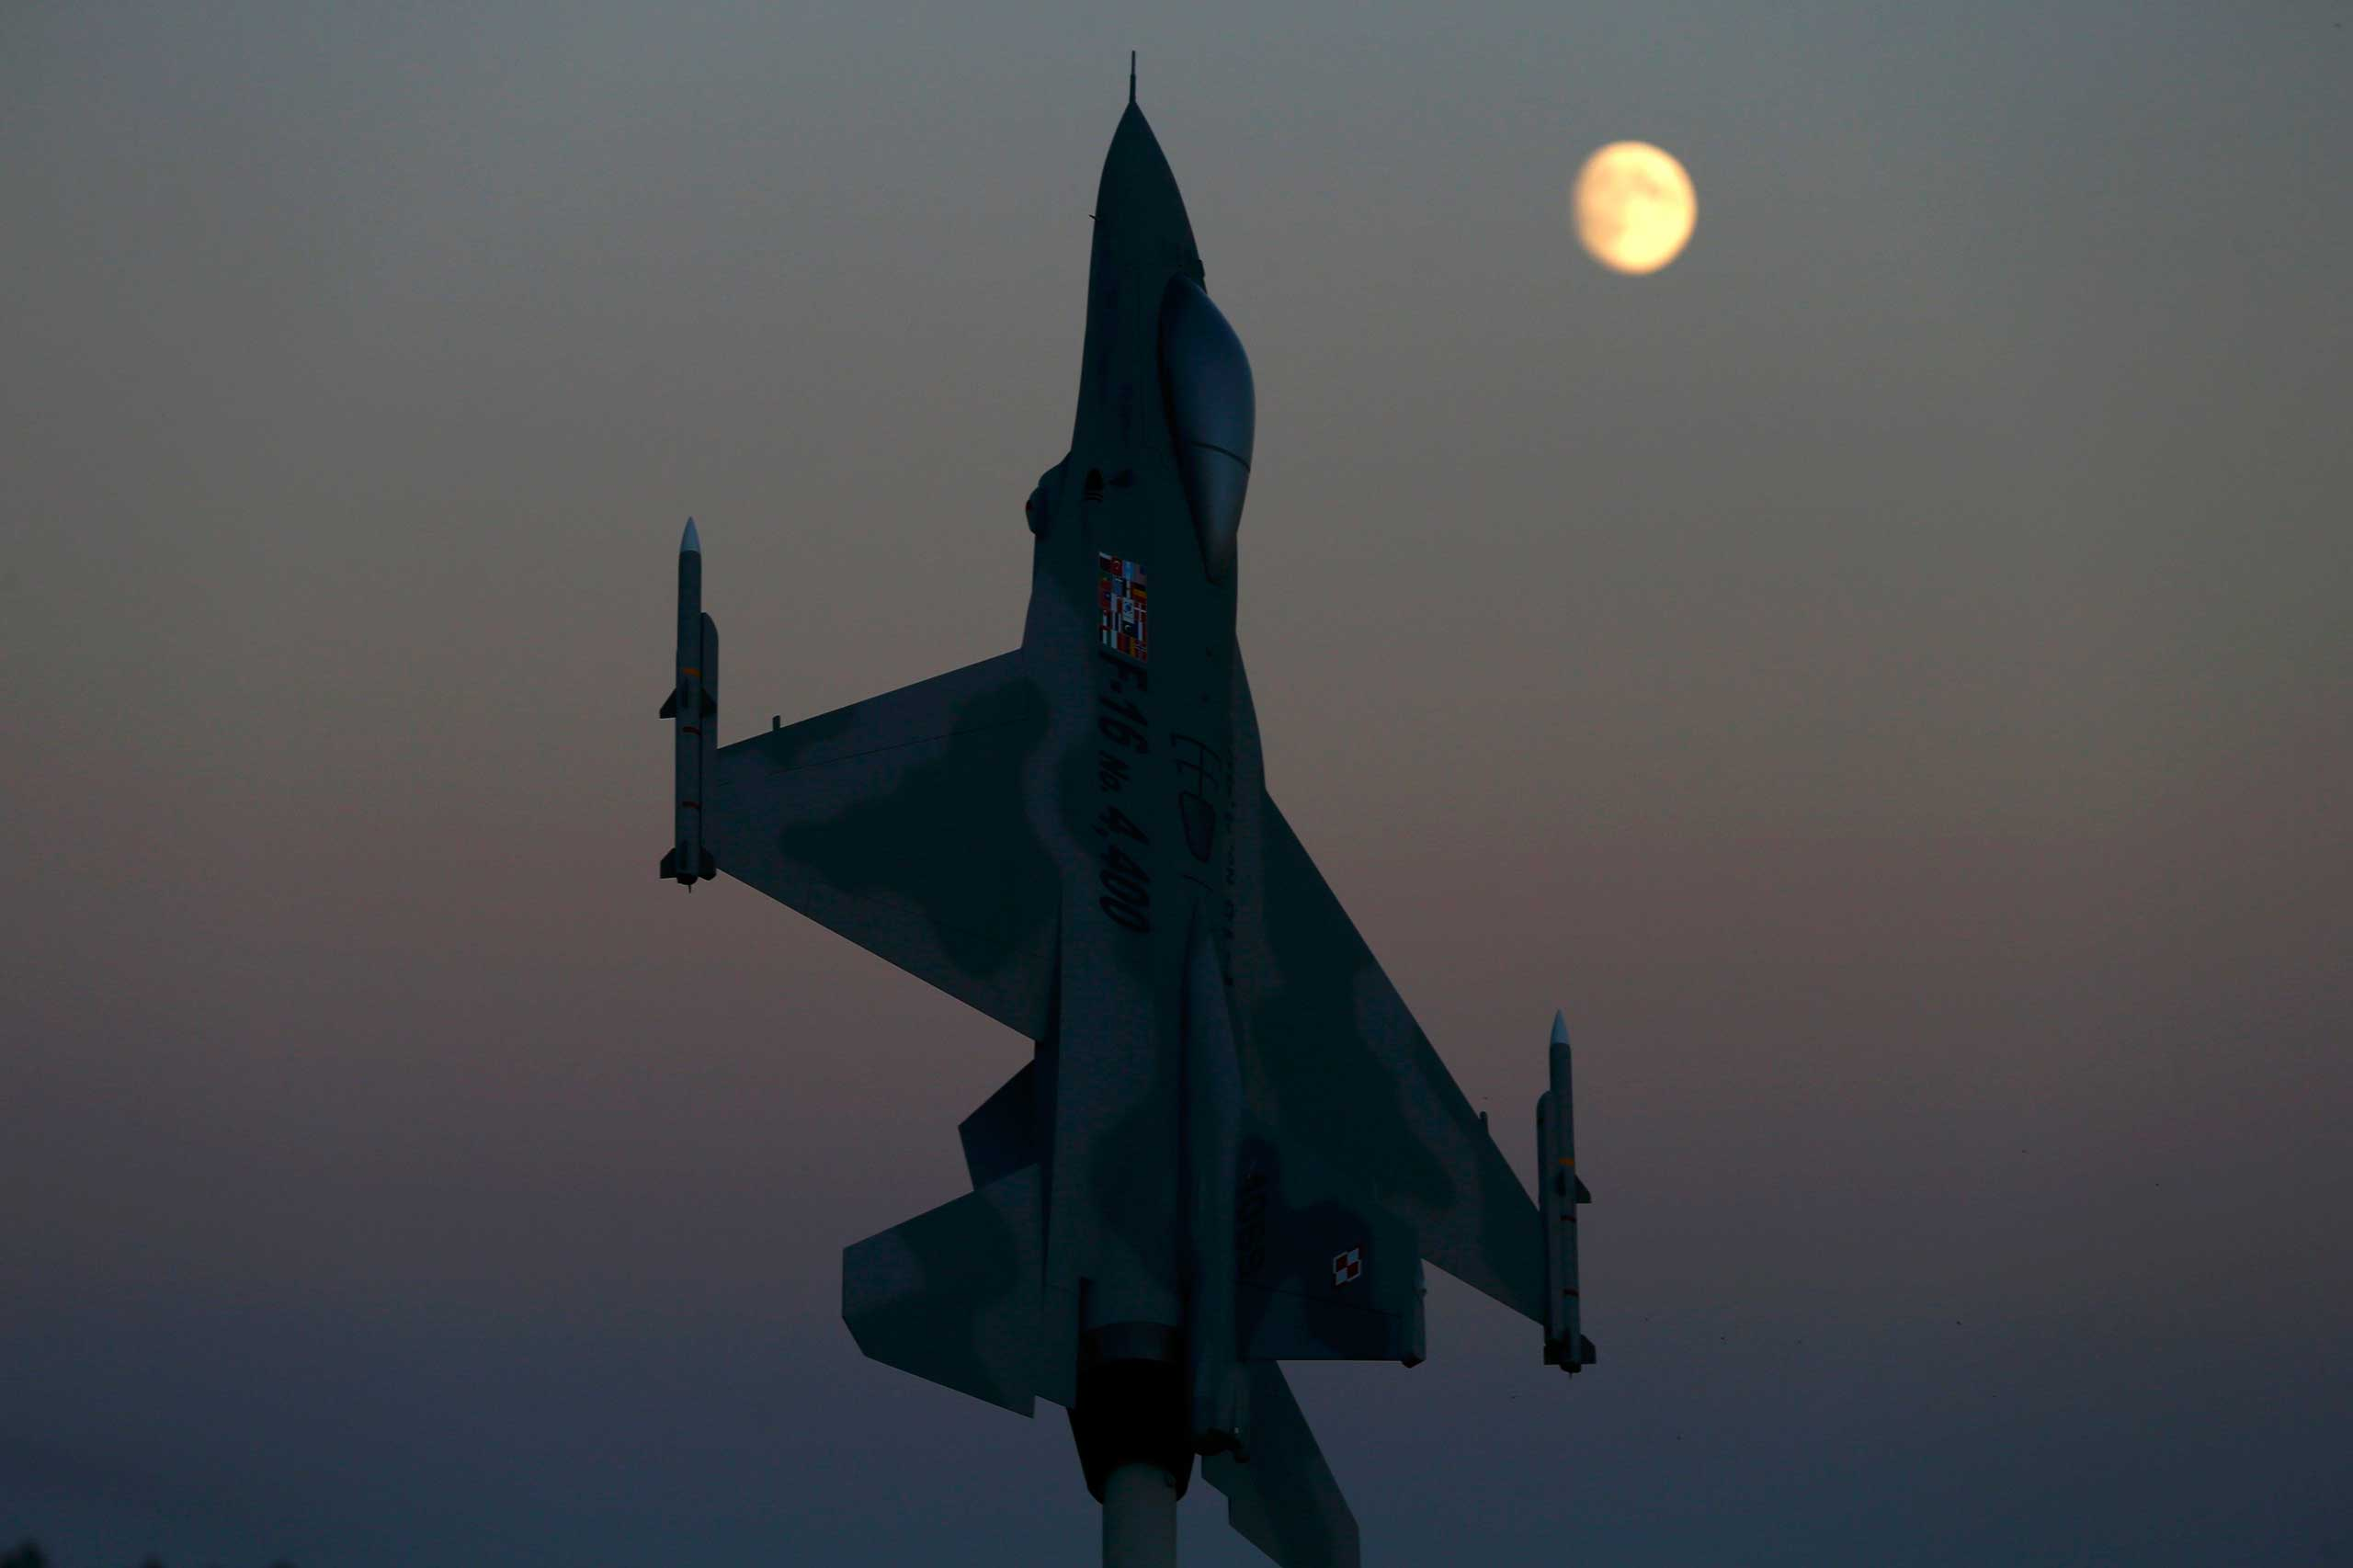 Oct. 6, 2014. A model of an F-16 aircraft, marking the 4,400th F-16 produced and delivered for Poland, is seen at dusk at Lask air base.